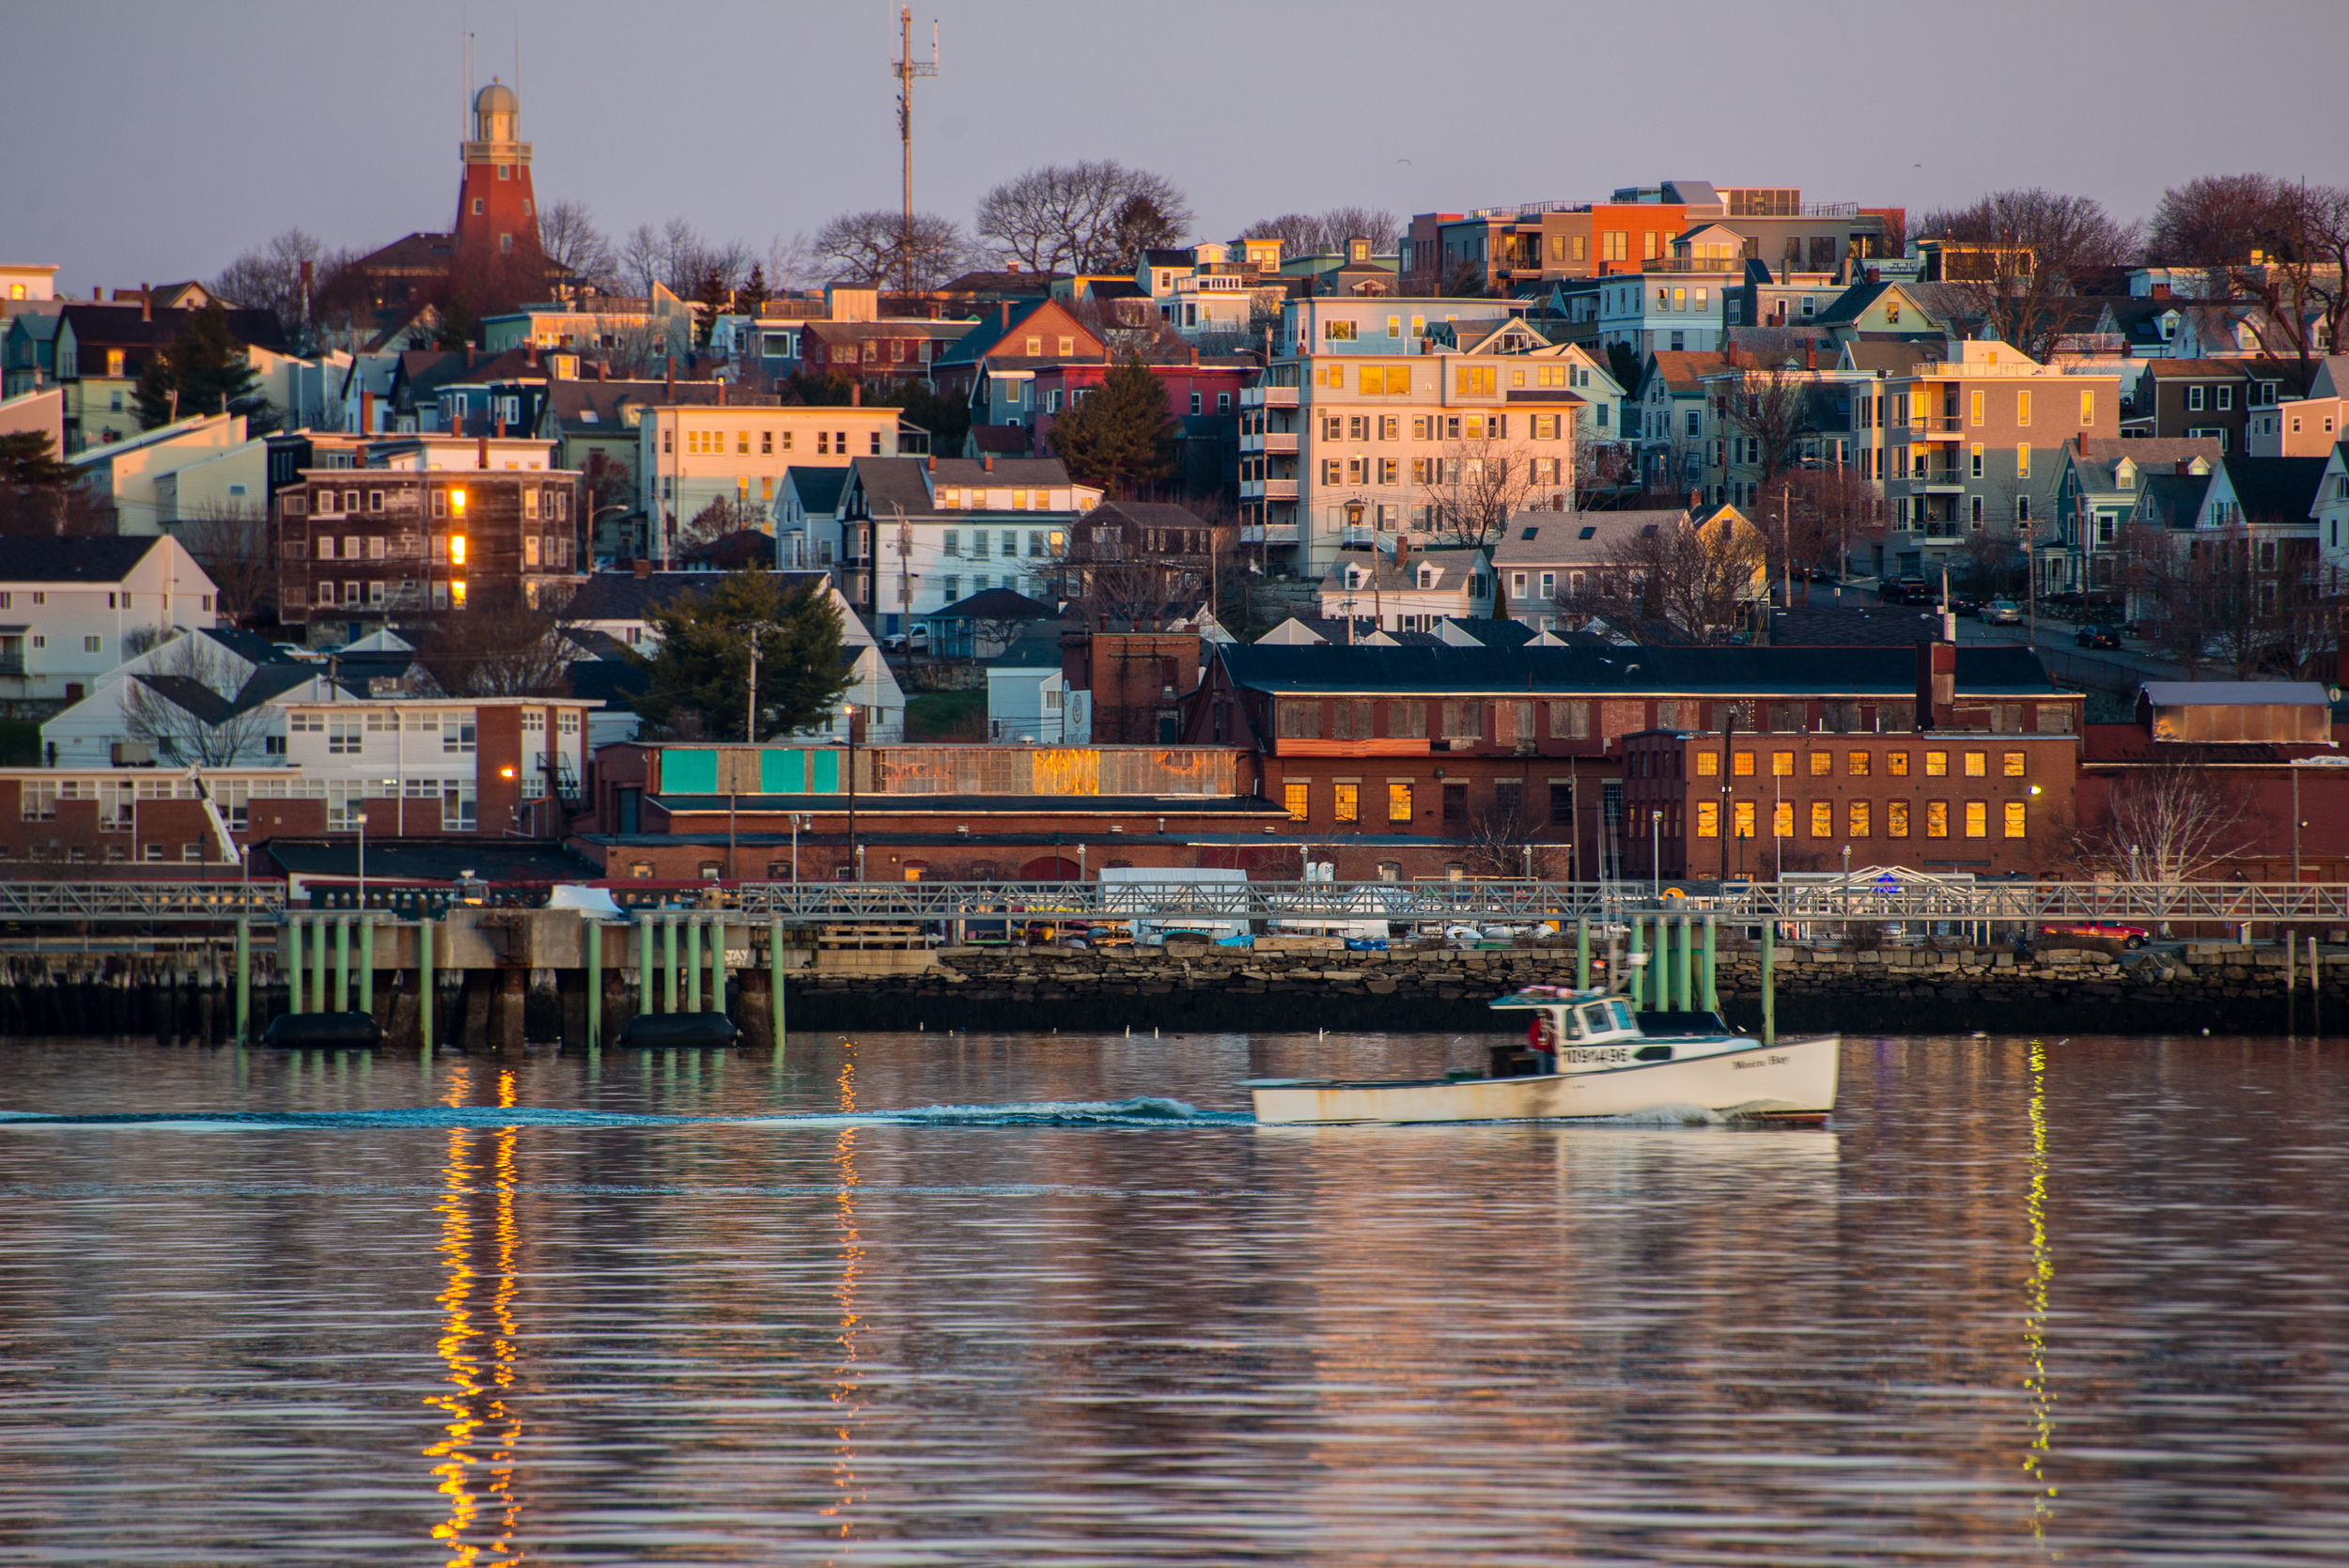 Corey Templeton has a wonderful collection of Munjoy Hill images on his blog  Portland Daily Photo .